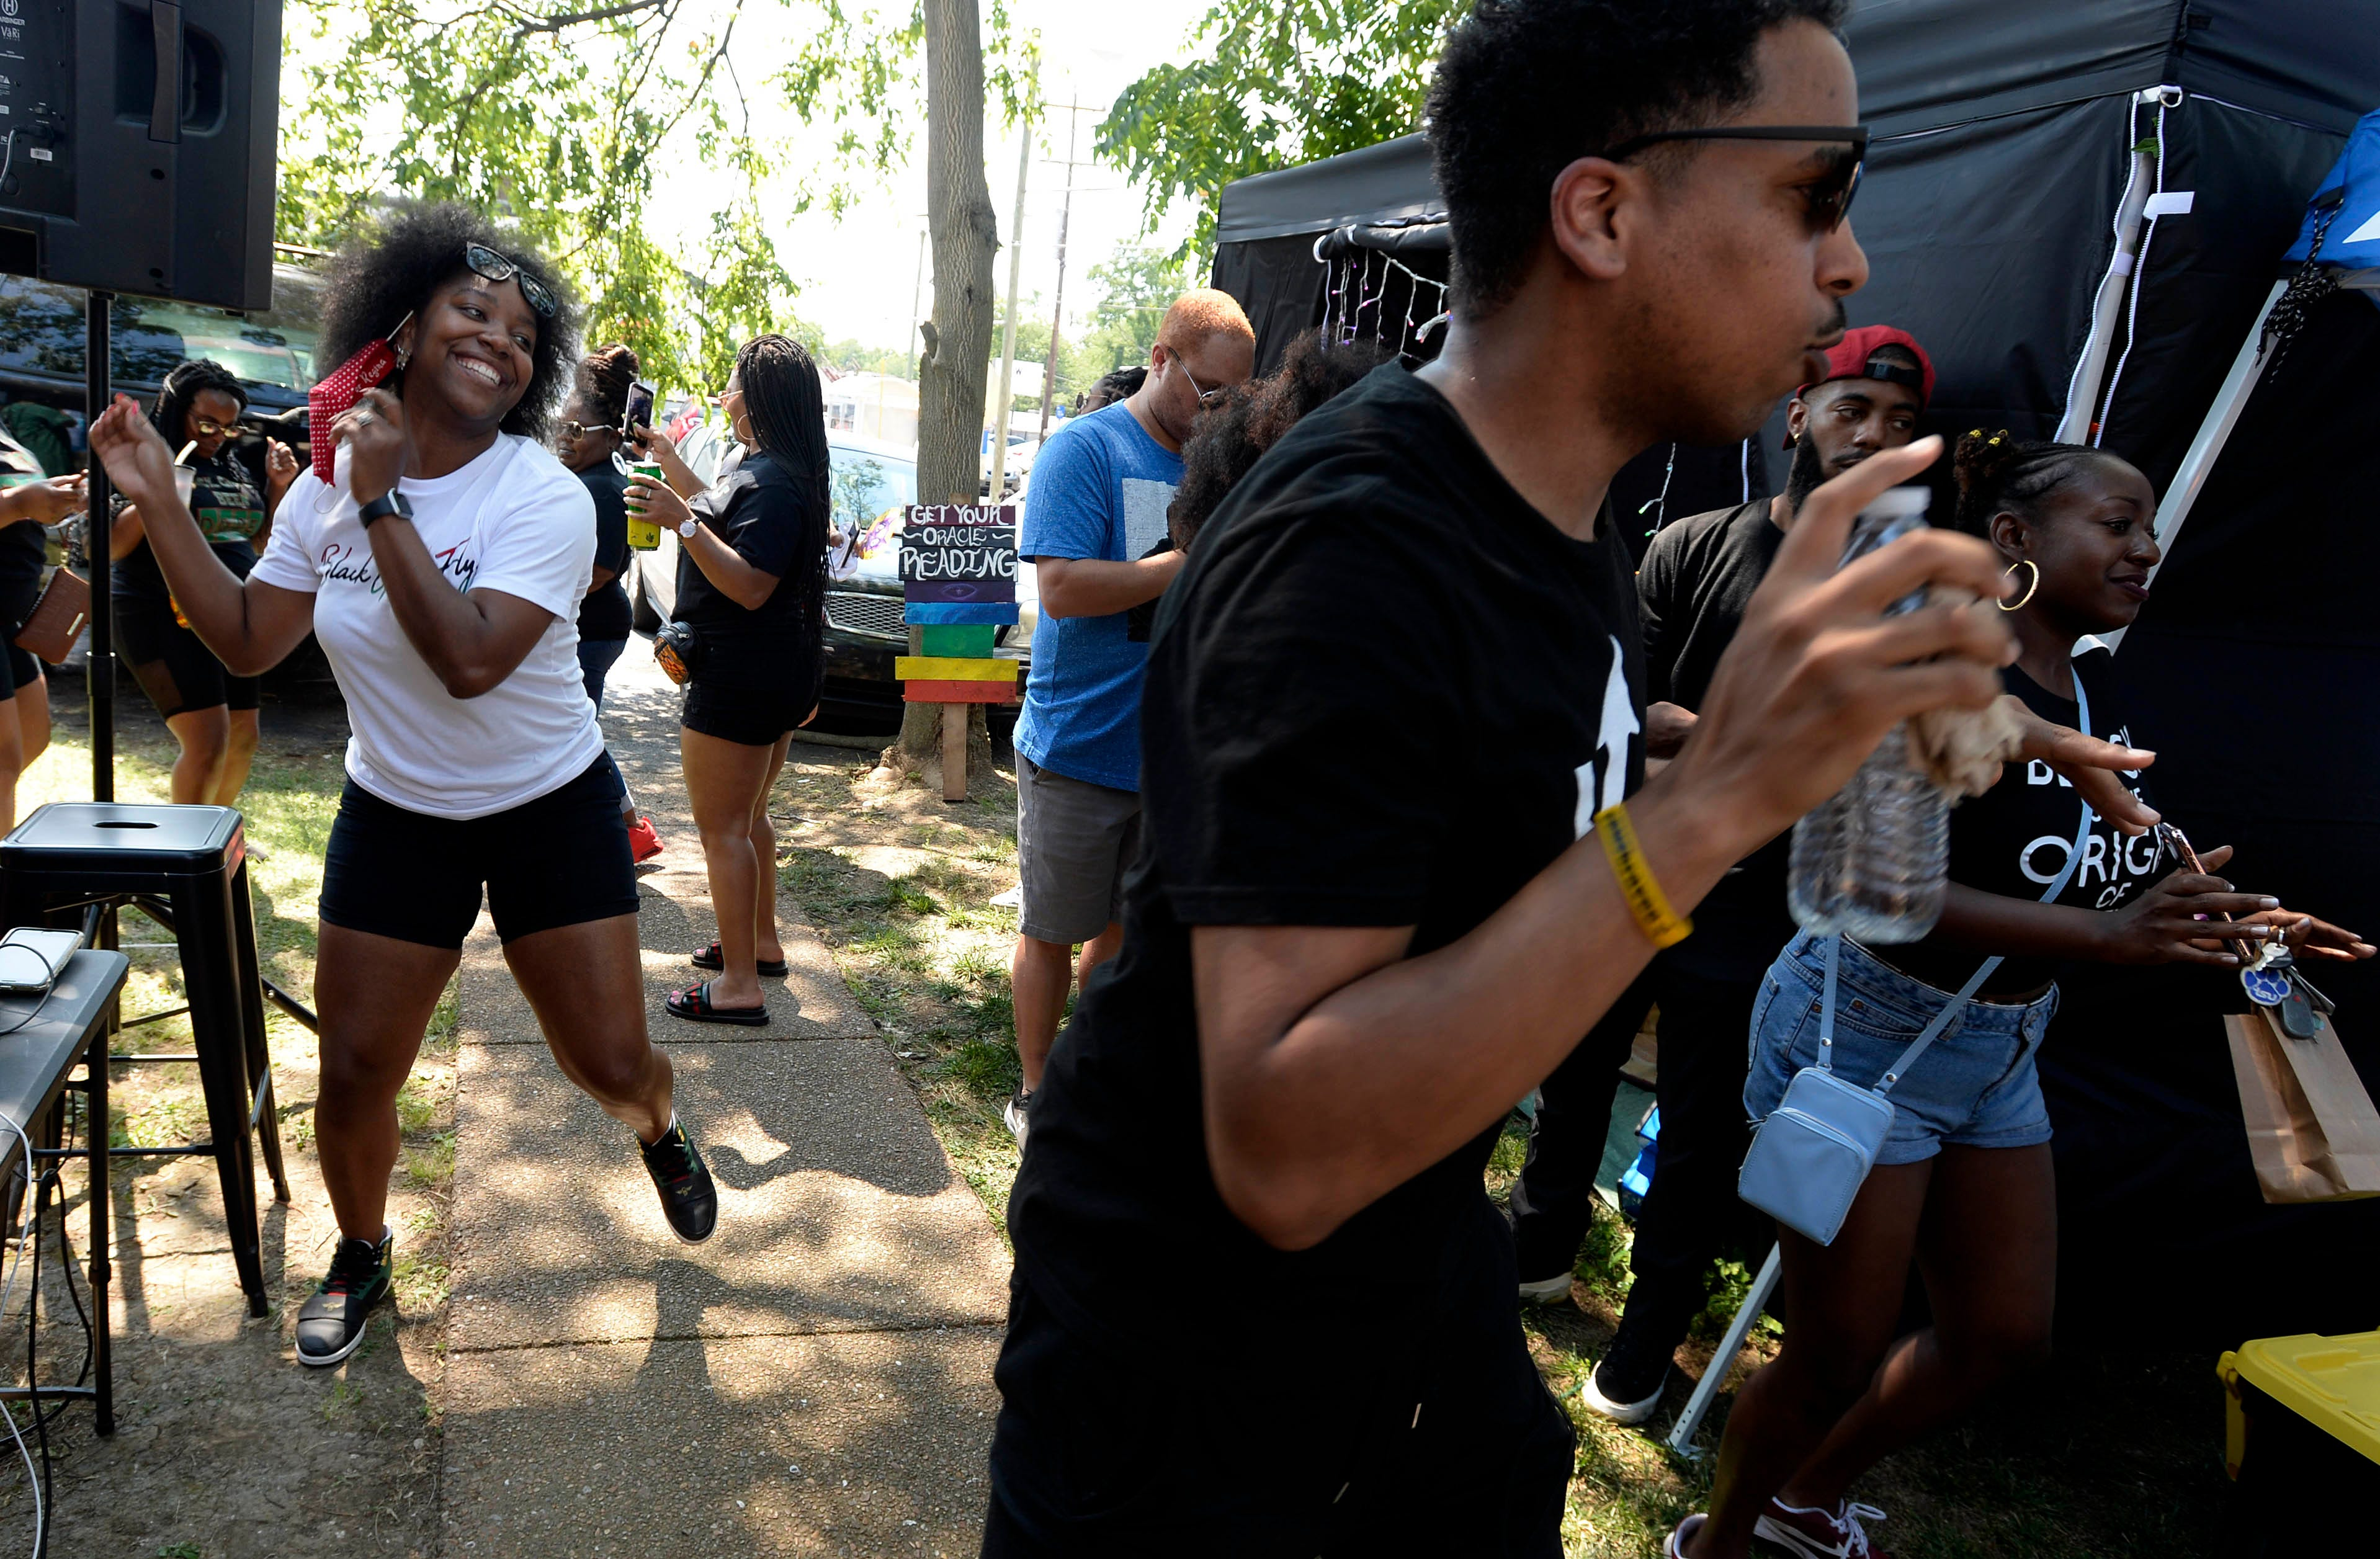 Juneteenth 2021 celebrations: What to know about the holiday